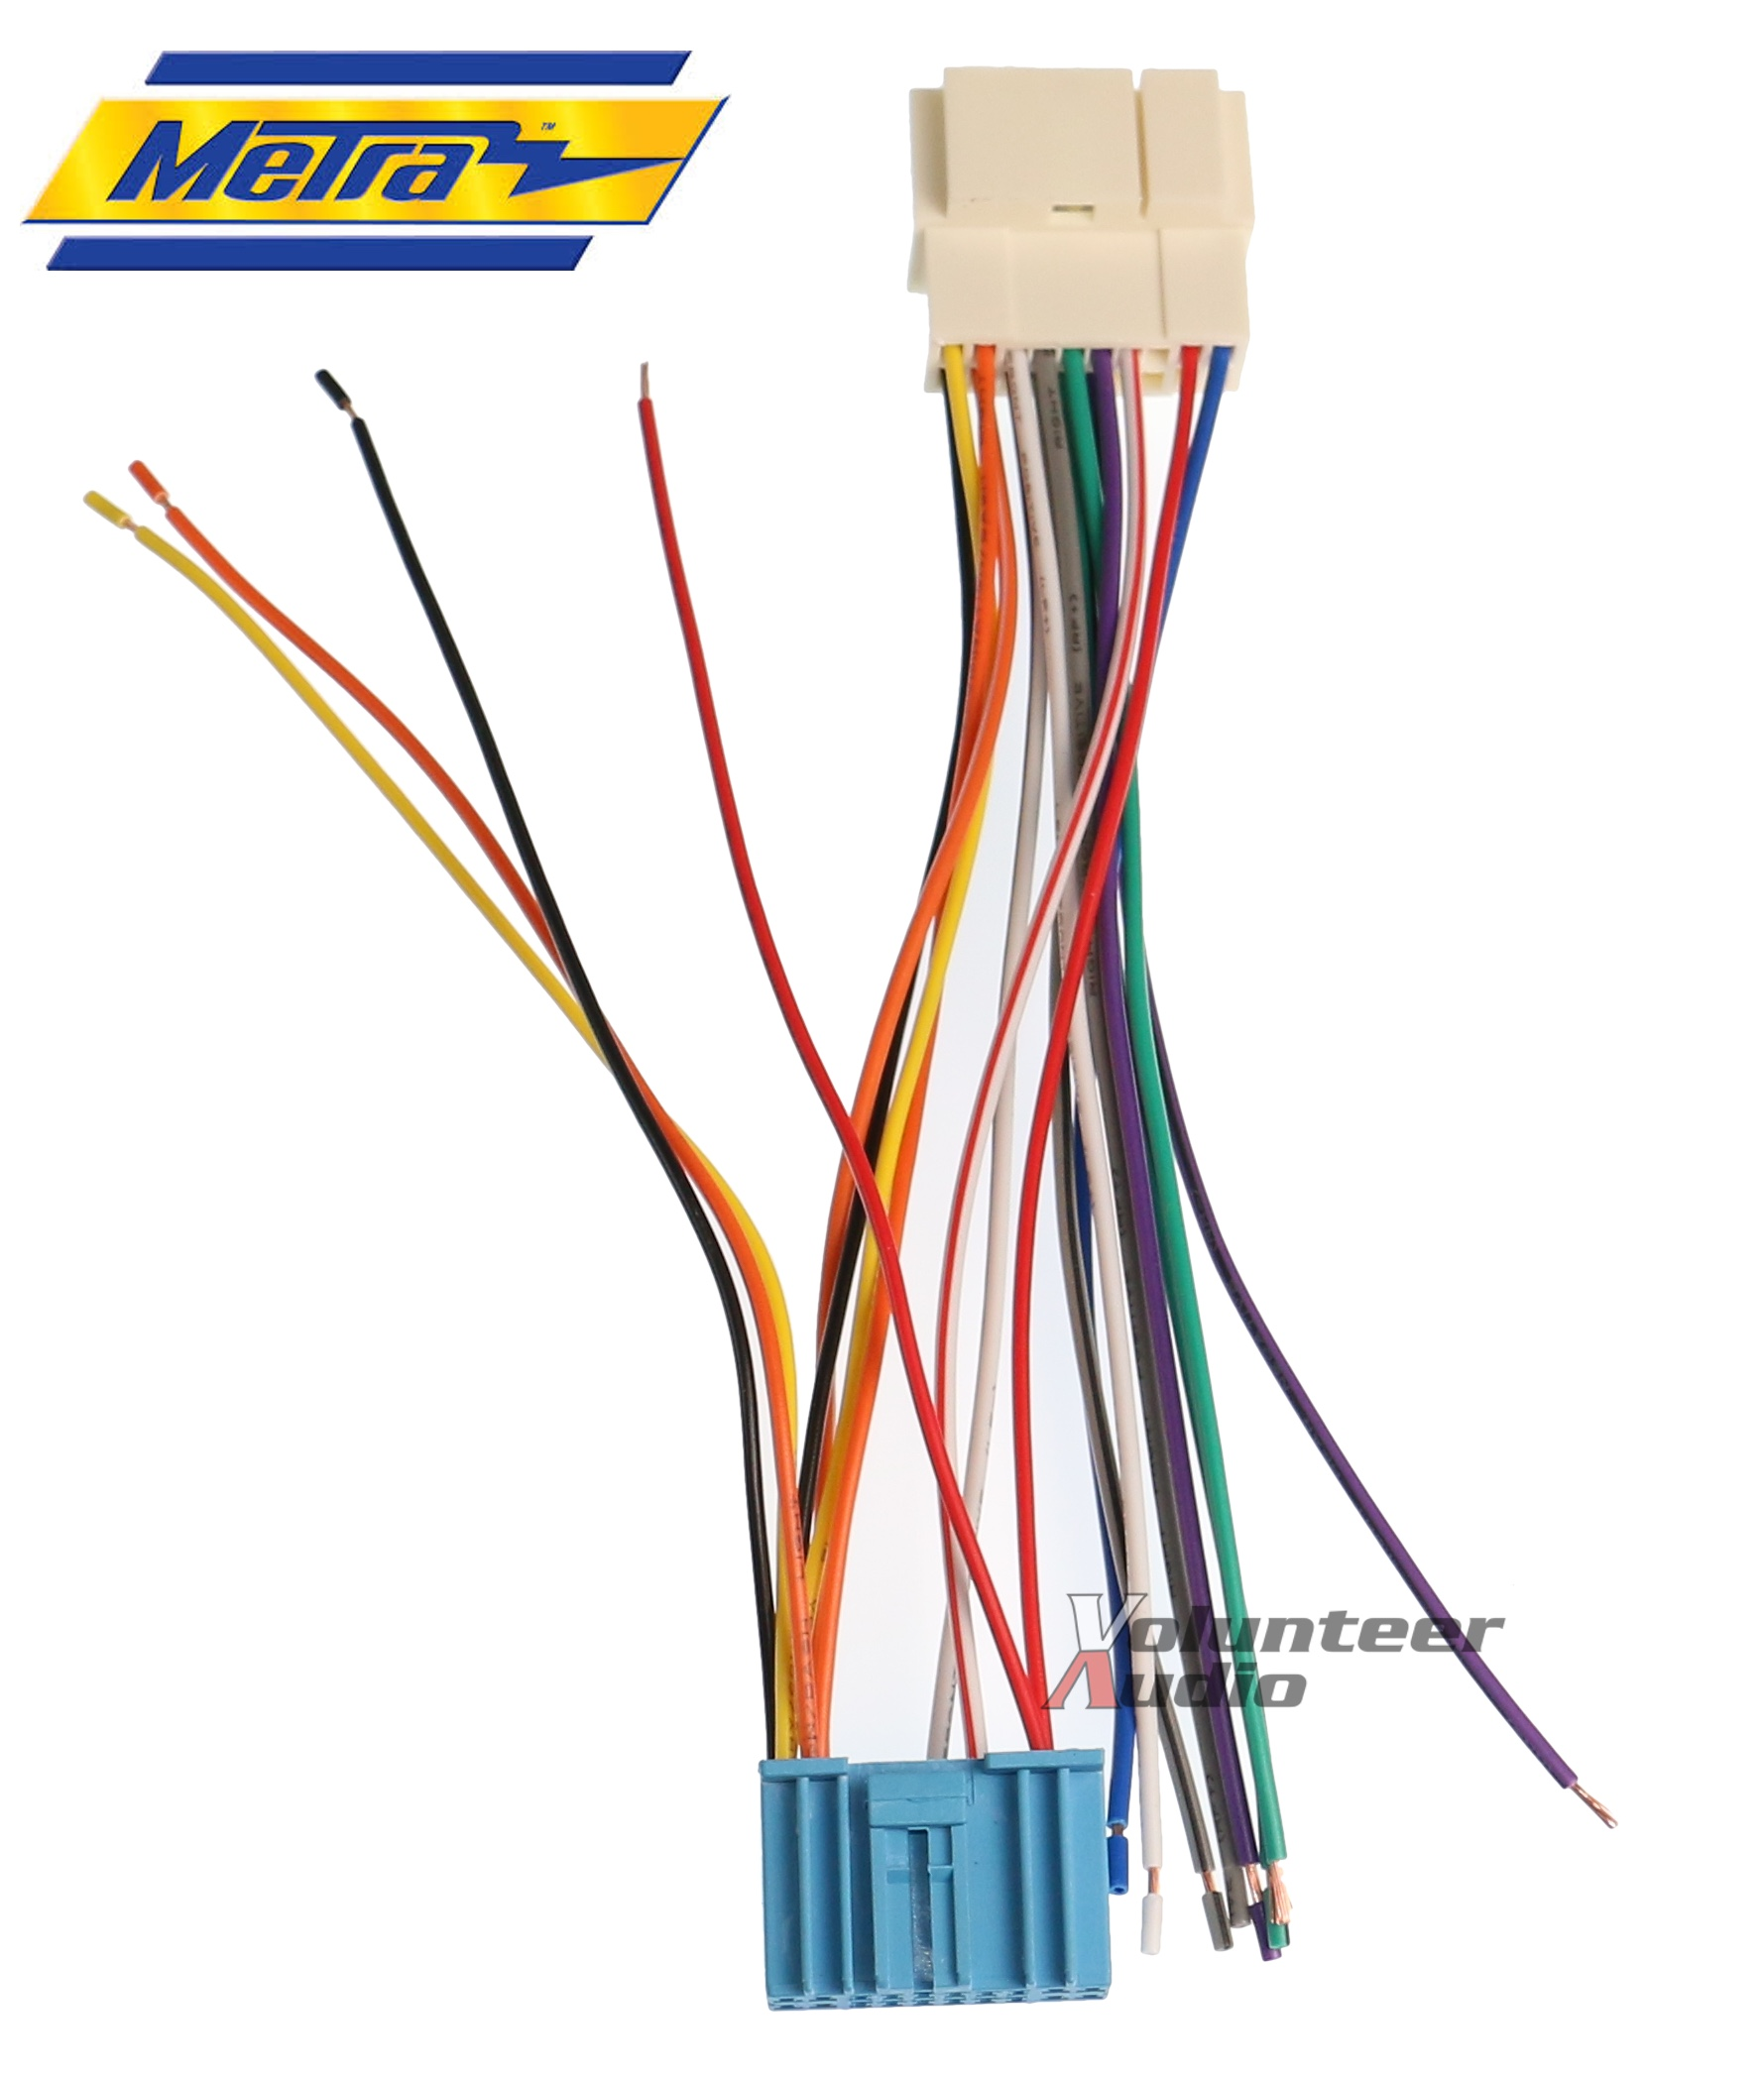 Panasonic Car Stereo Wiring Harness Colors Not Lossing Cq Rx100u Diagram Sony Cdx Fw570 Get Free Image About Automotive Supplies